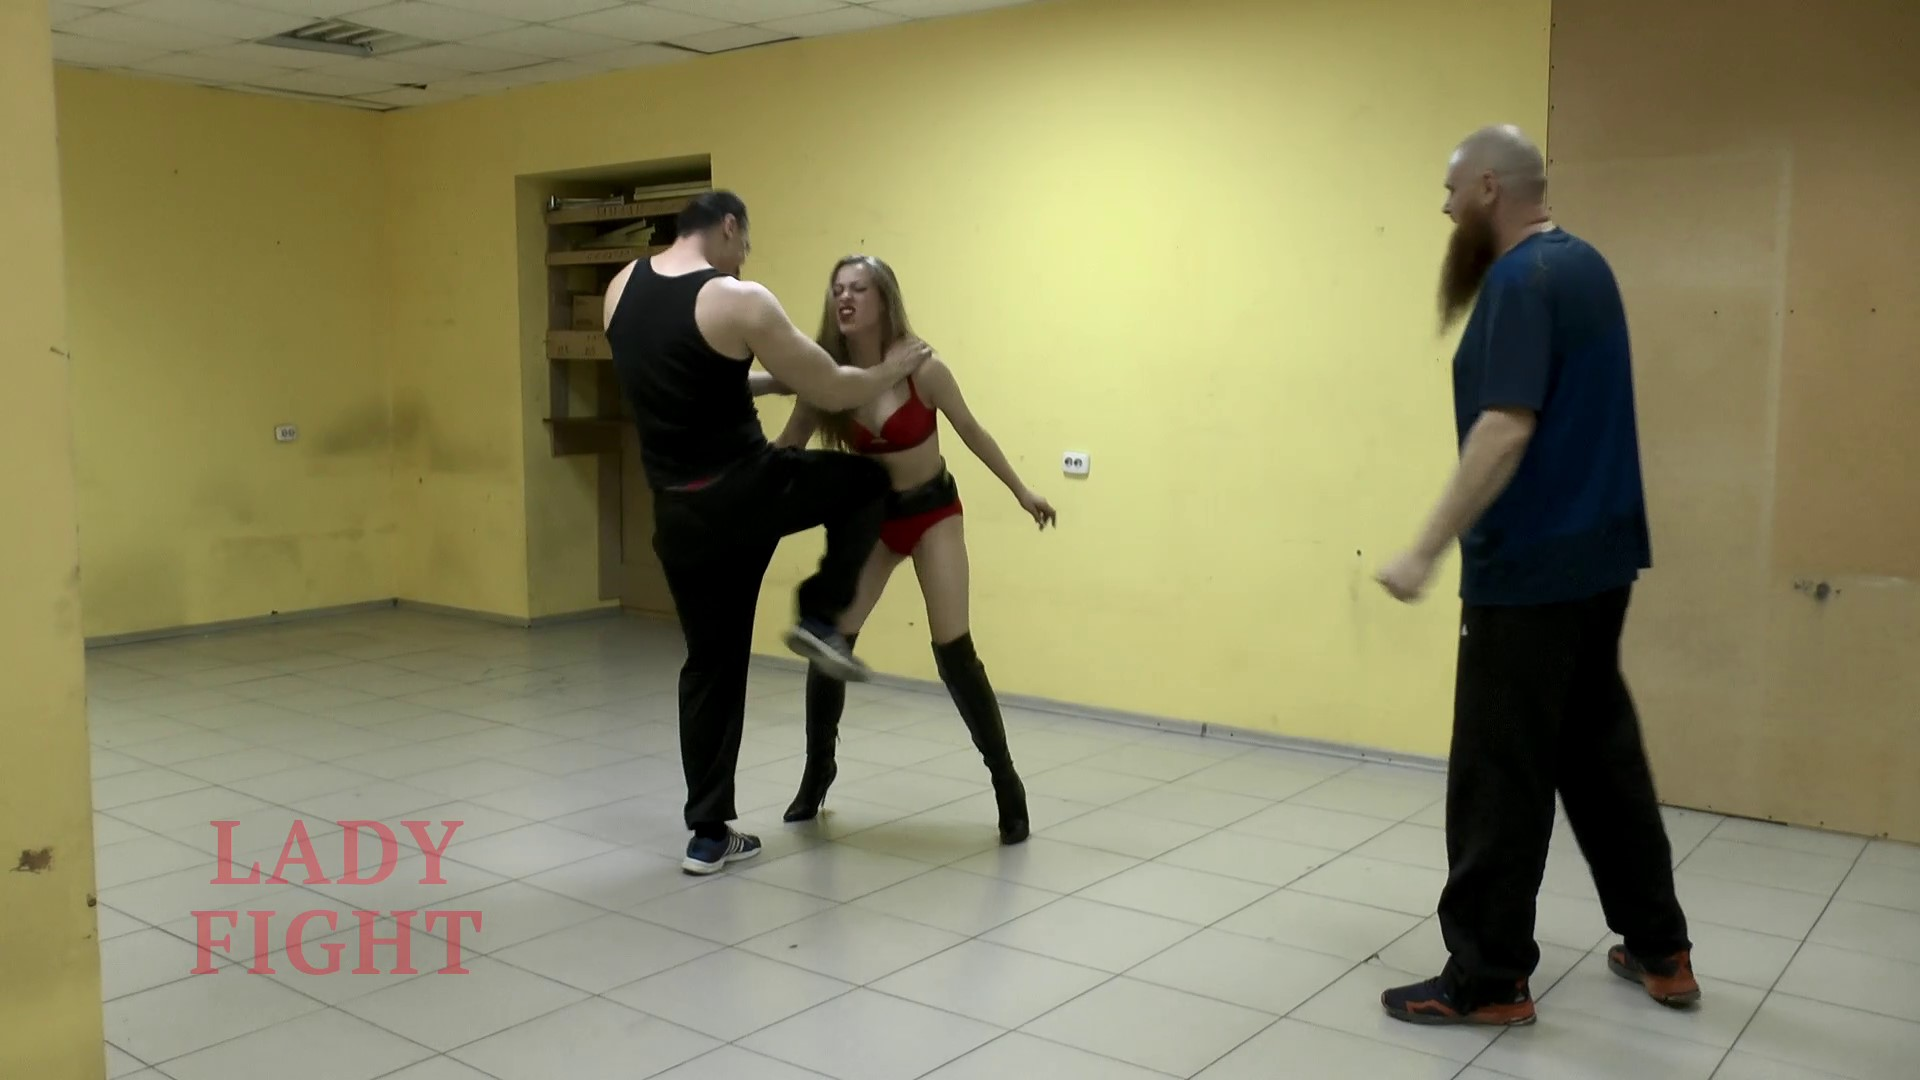 LADYFIGHT-Deadly-Wrestling-For-Lora-86